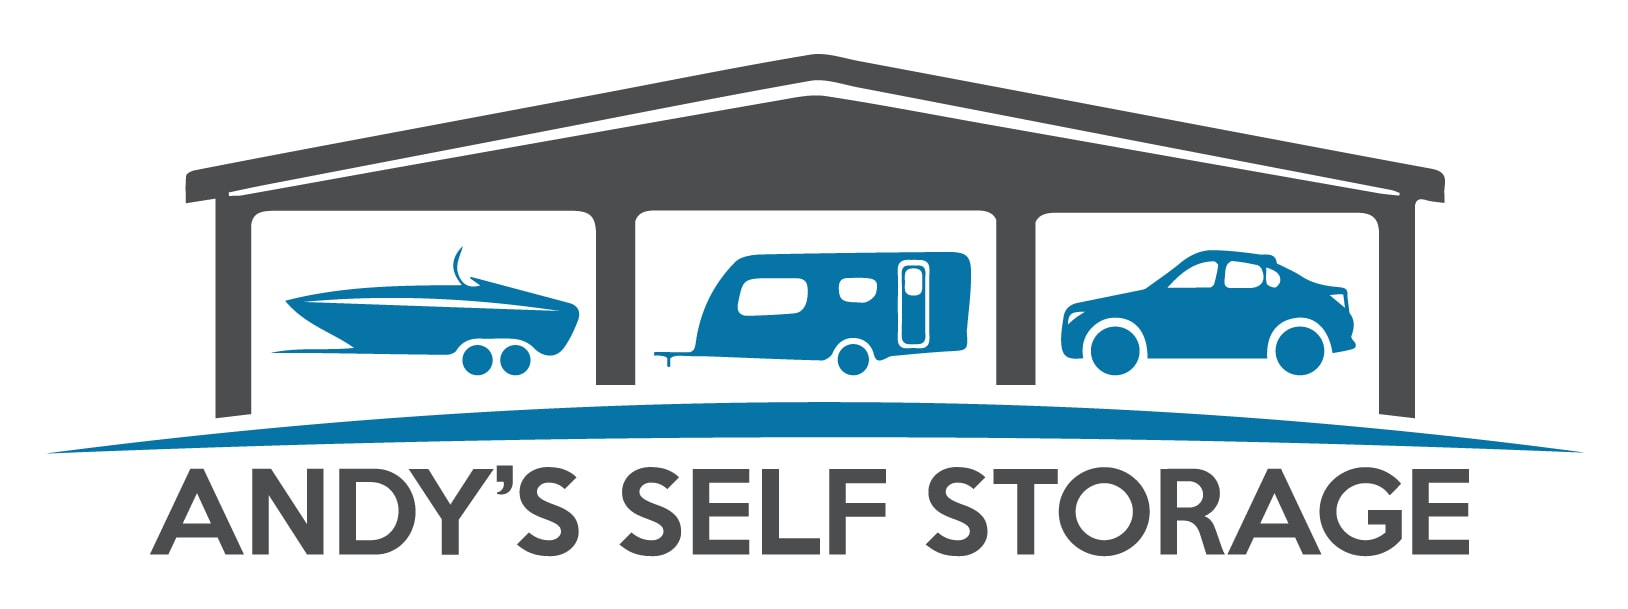 Andys Self Storage Logo